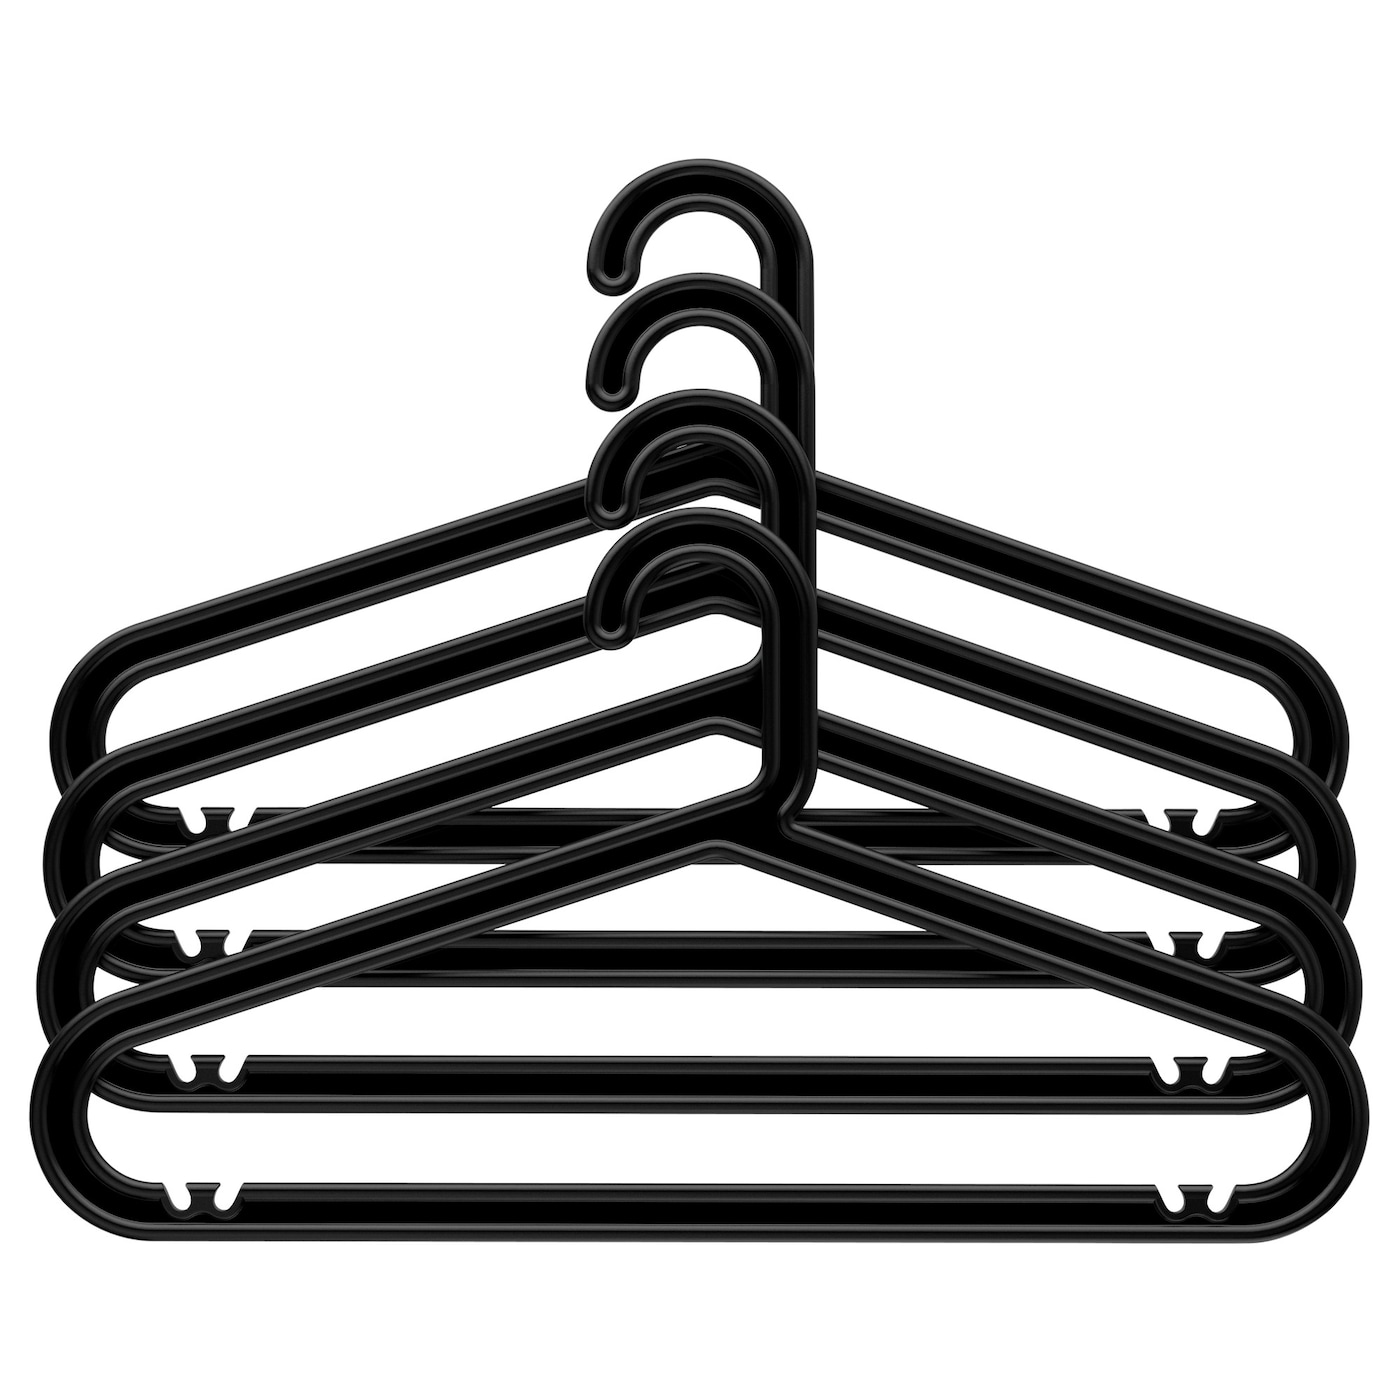 IKEA BAGIS hanger, in/outdoor Suitable for both indoor and outdoor use.